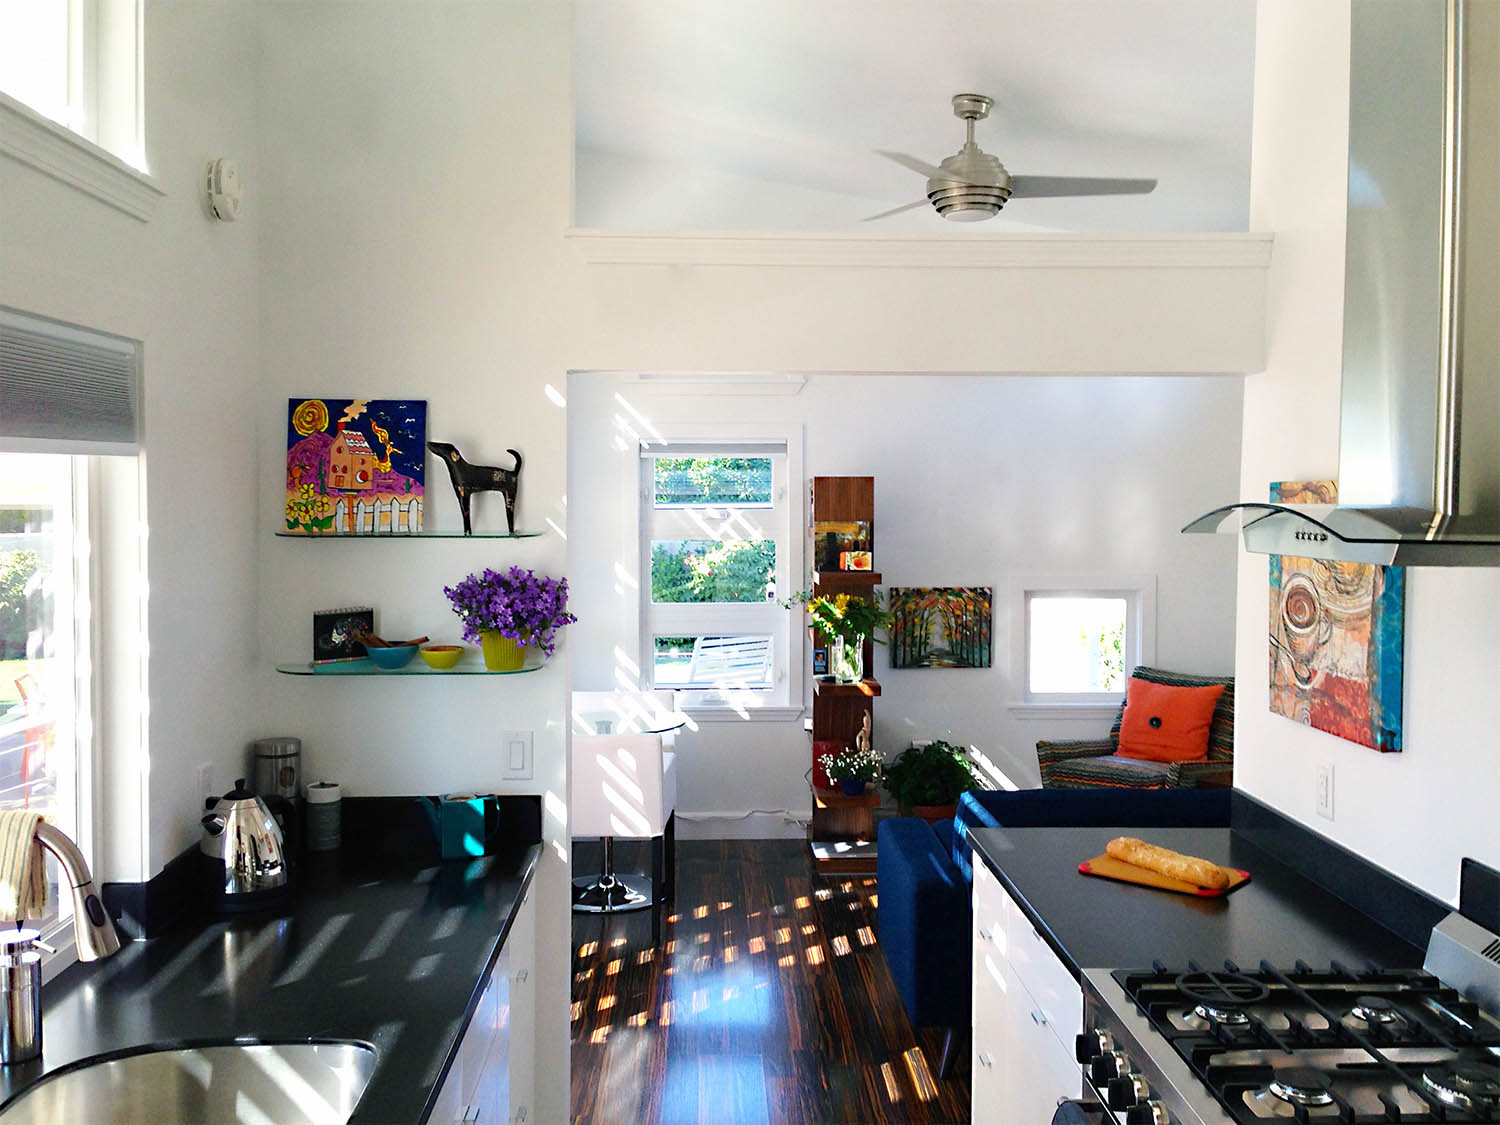 ideabox white kitchen 2.jpg